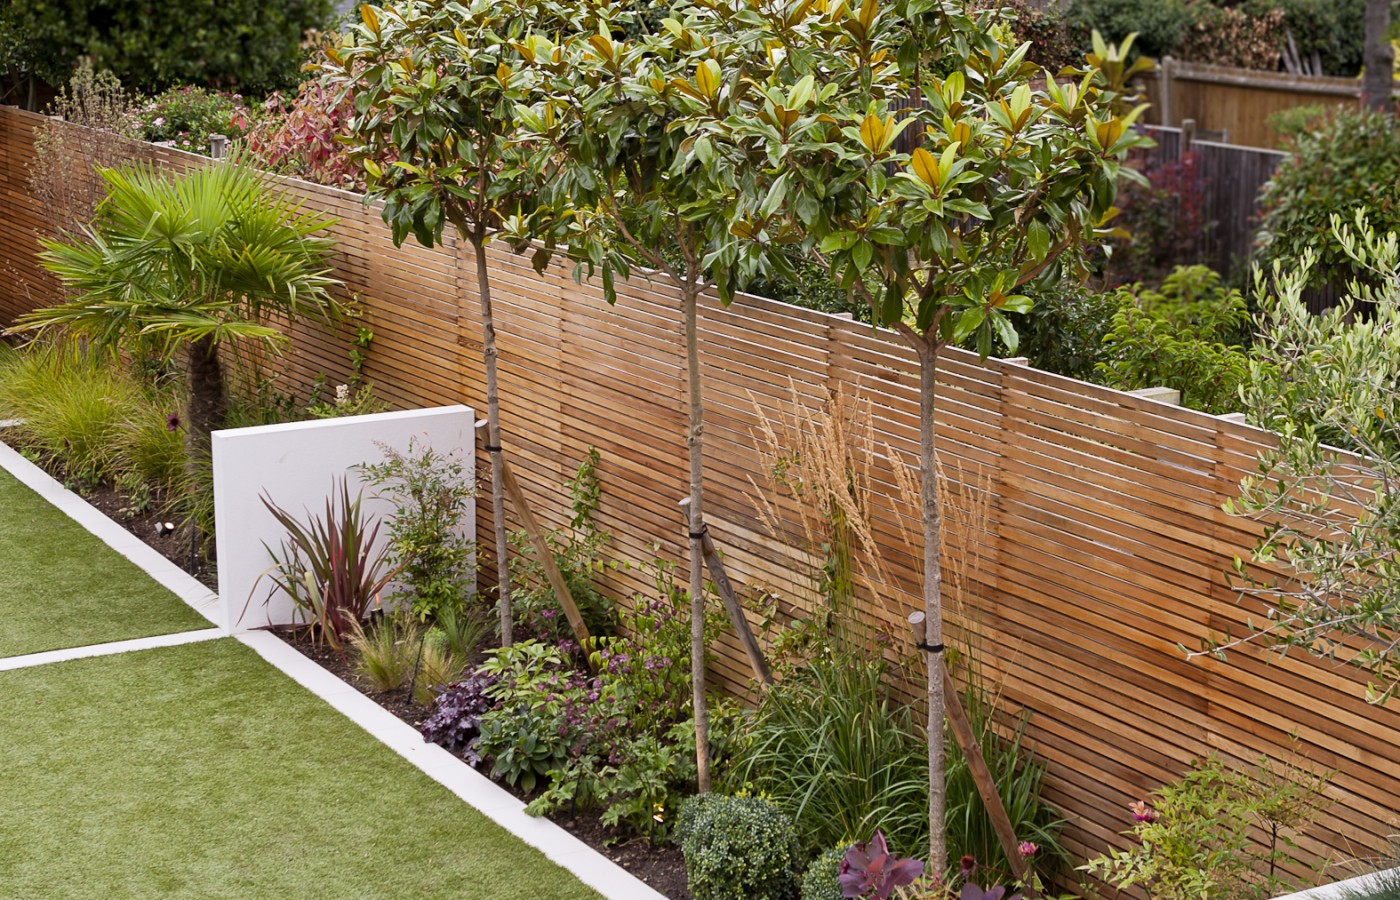 Beau ... Long Thin Garden Design From The Patio, Showing Wooden Seating And  Family Planting In Contained Flowerbeds Edging The Lawn